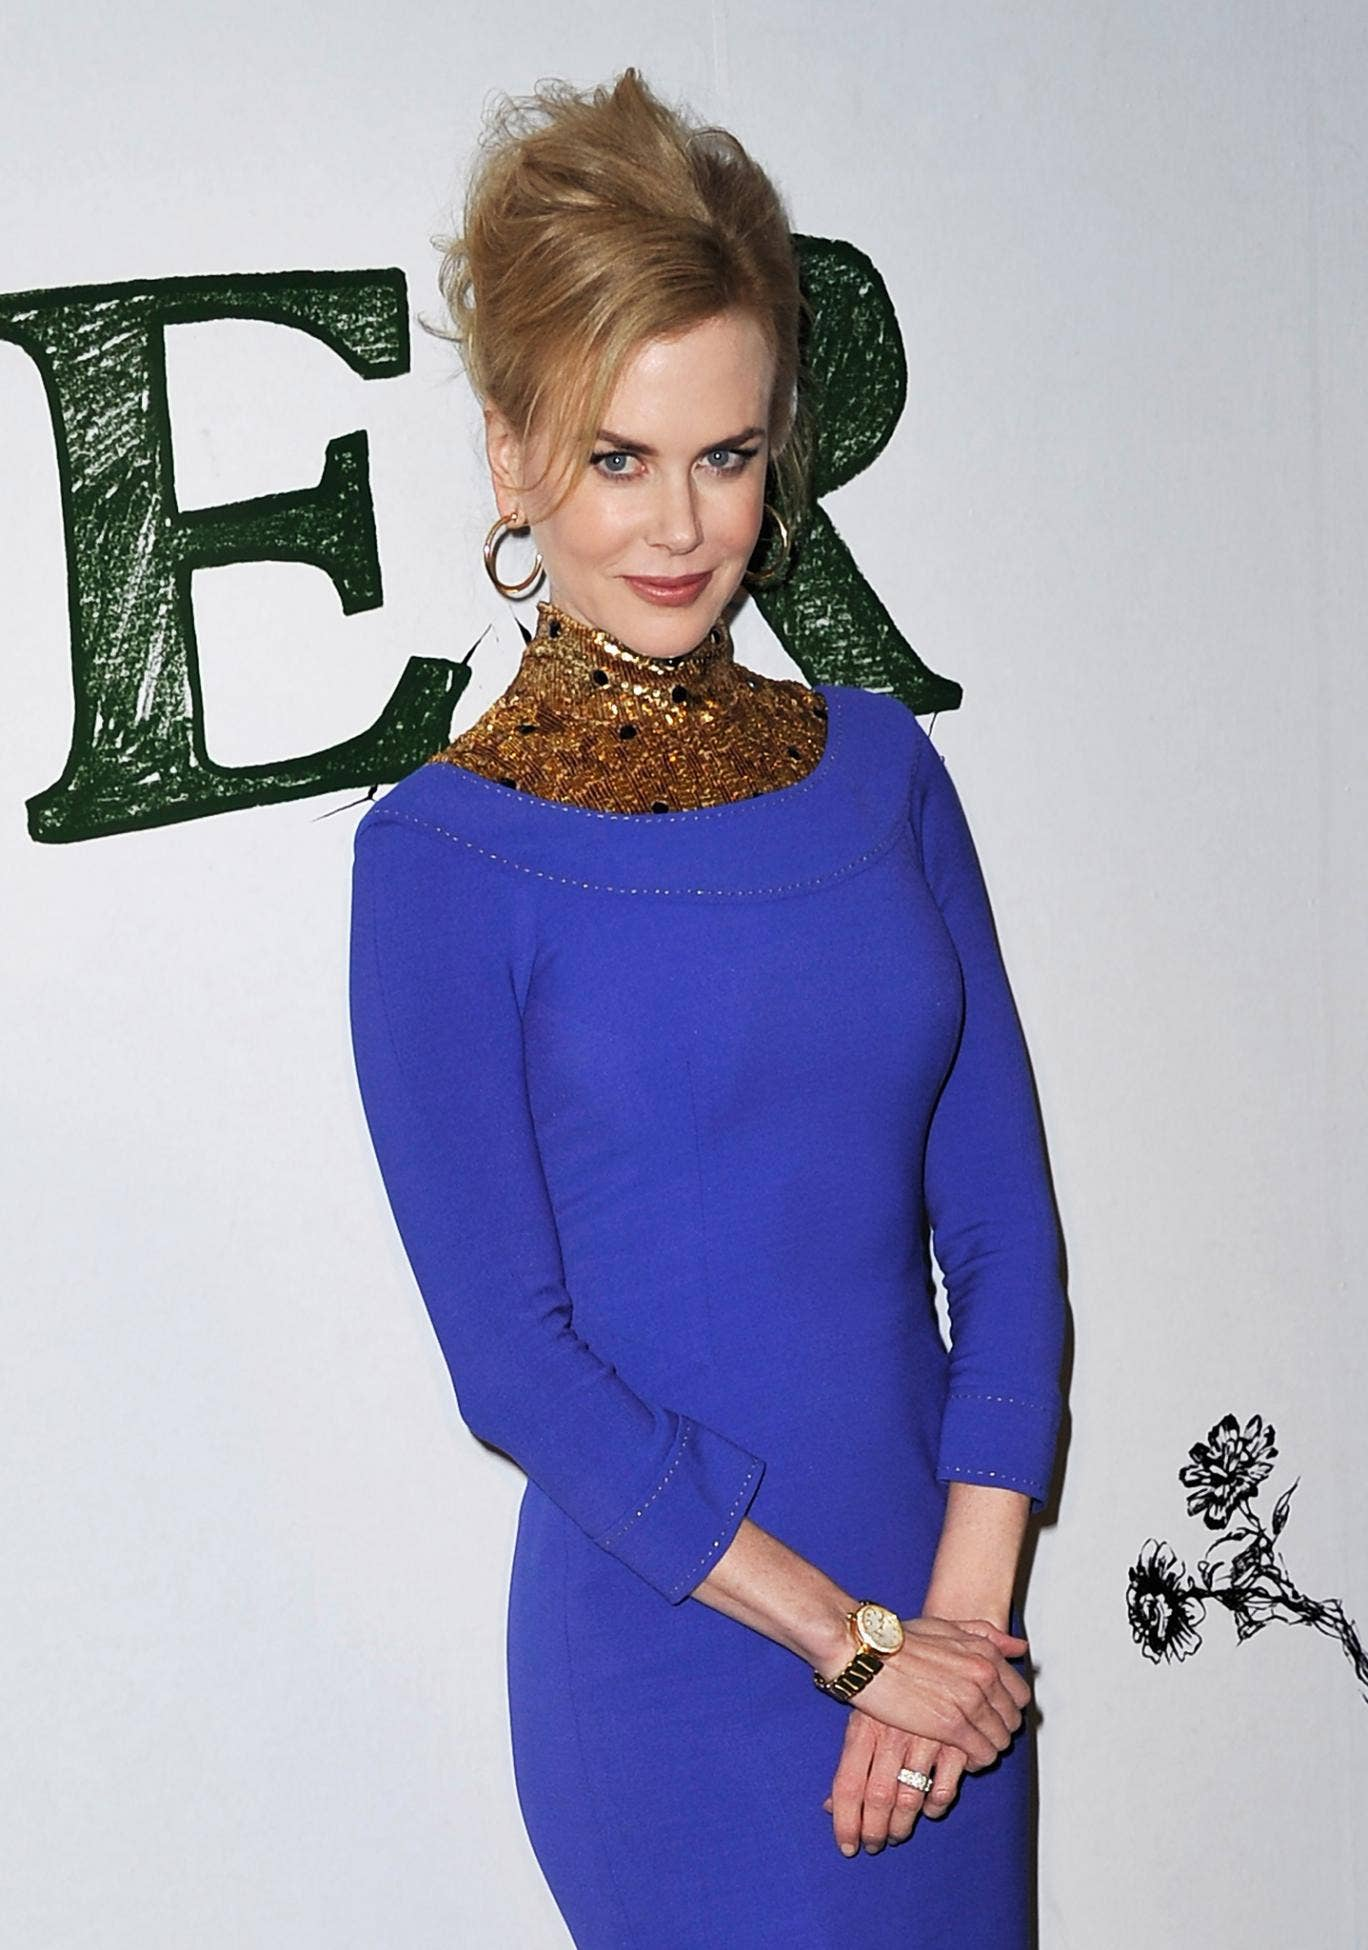 Nicole Kidman at the premiere of her new film Stoker